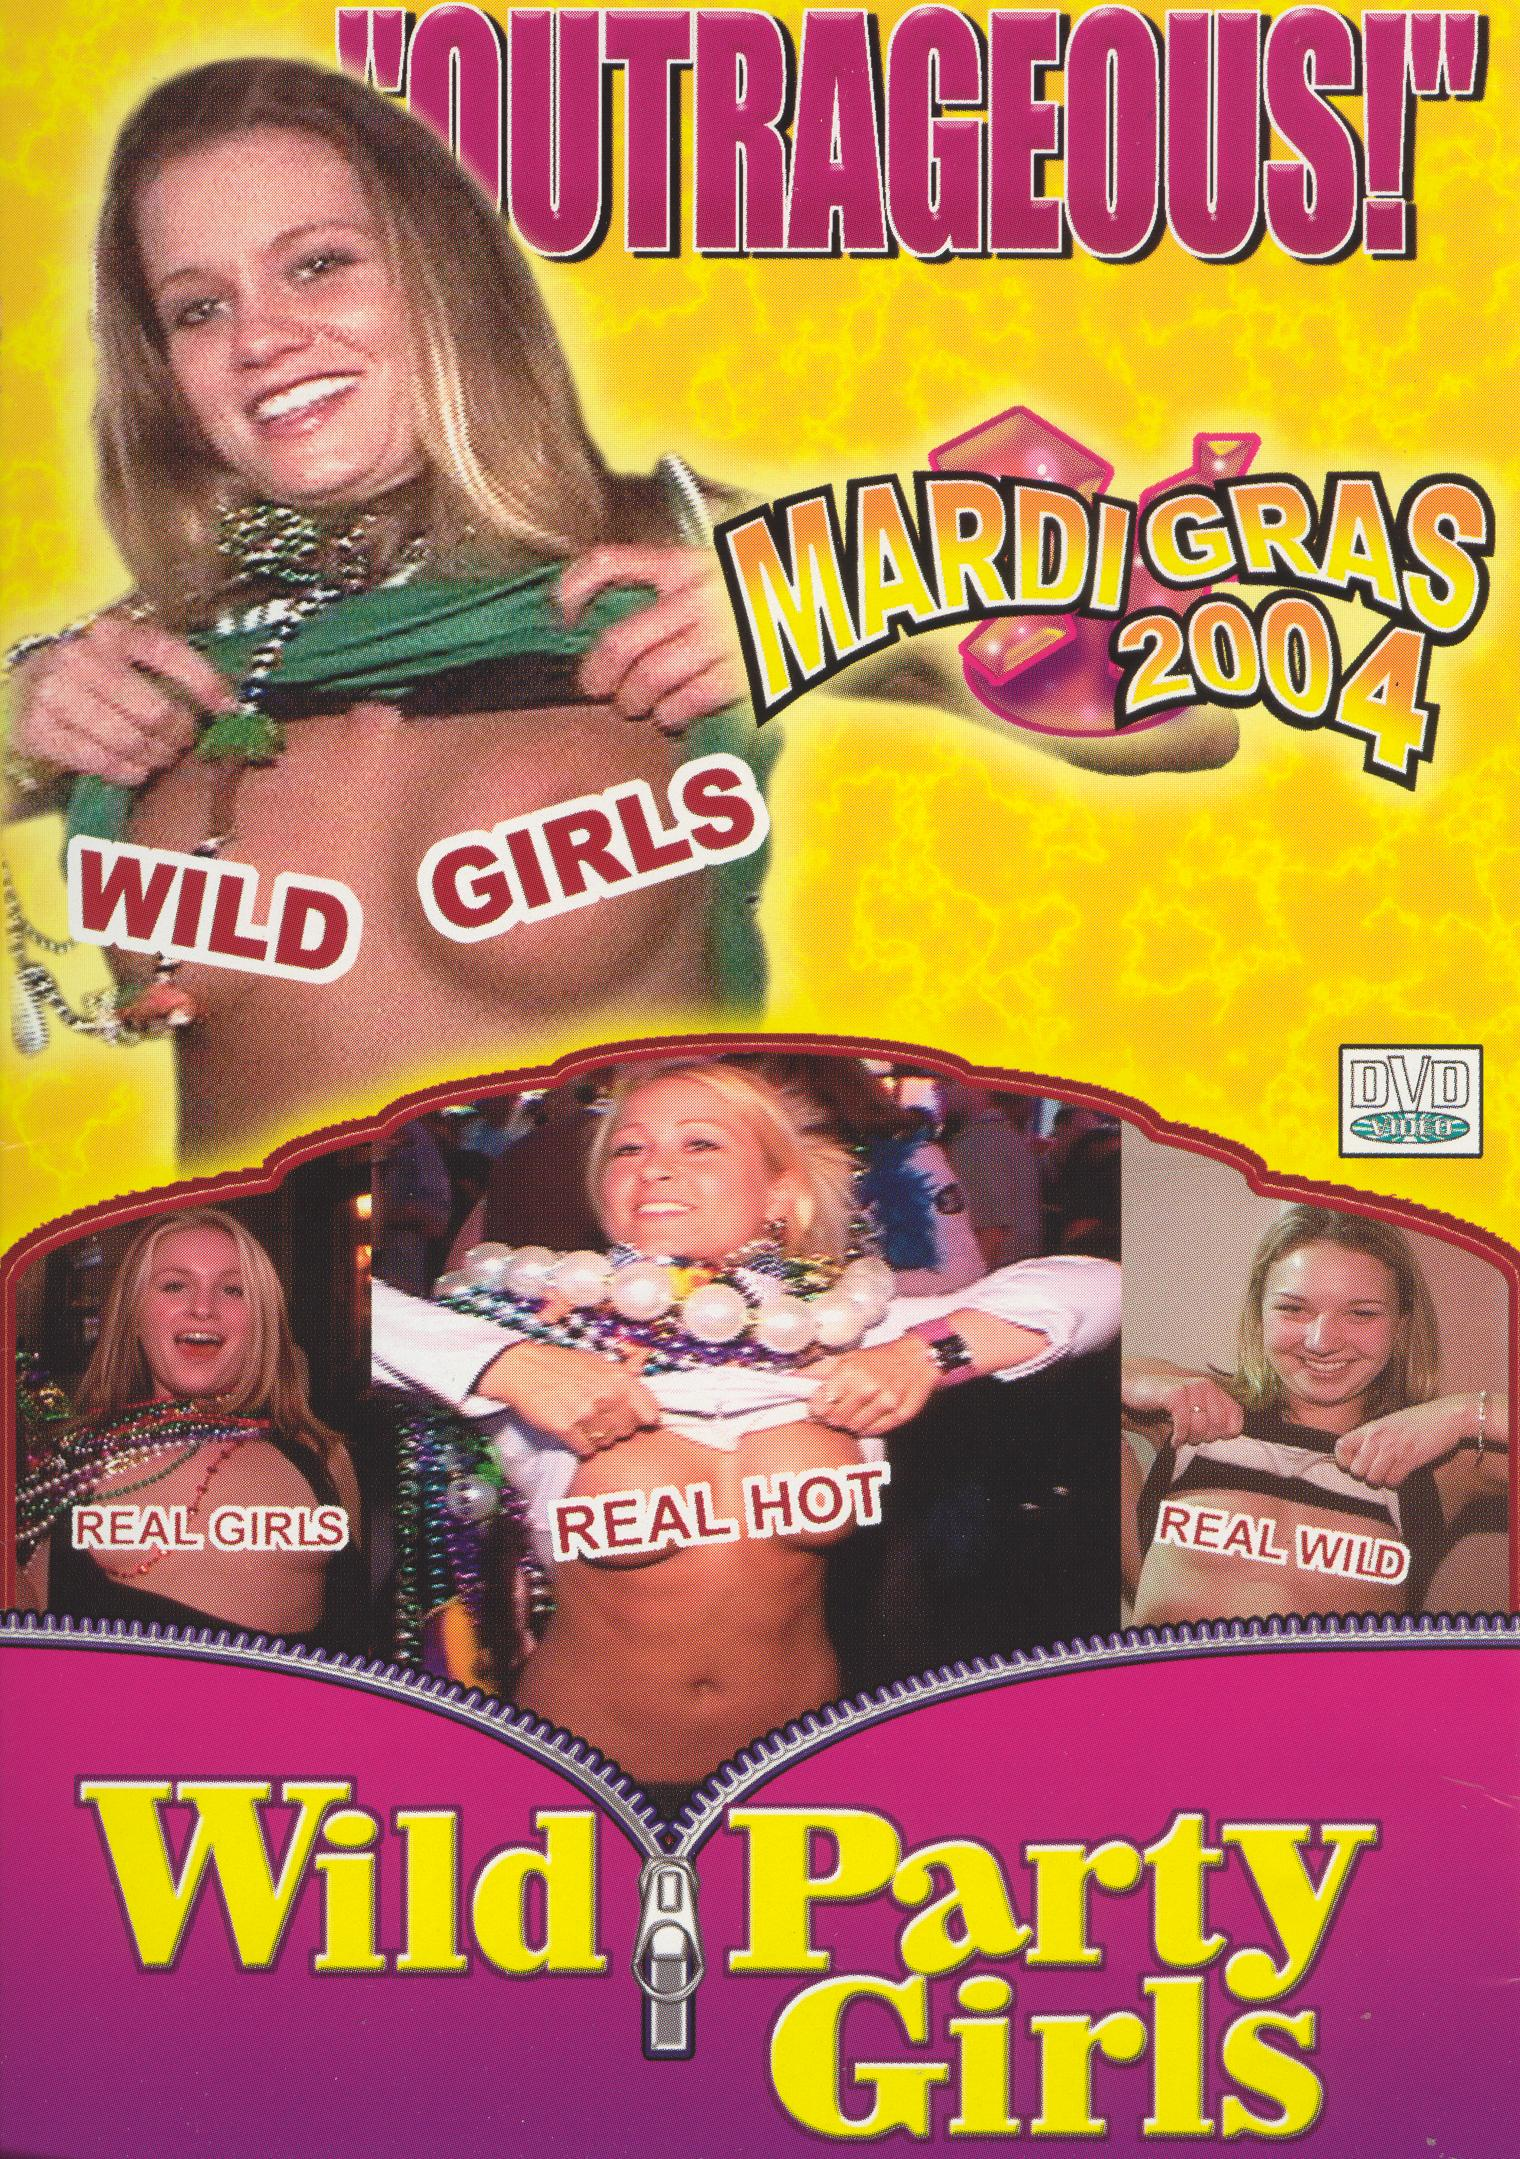 Wild Party Girls: Mardi Gras